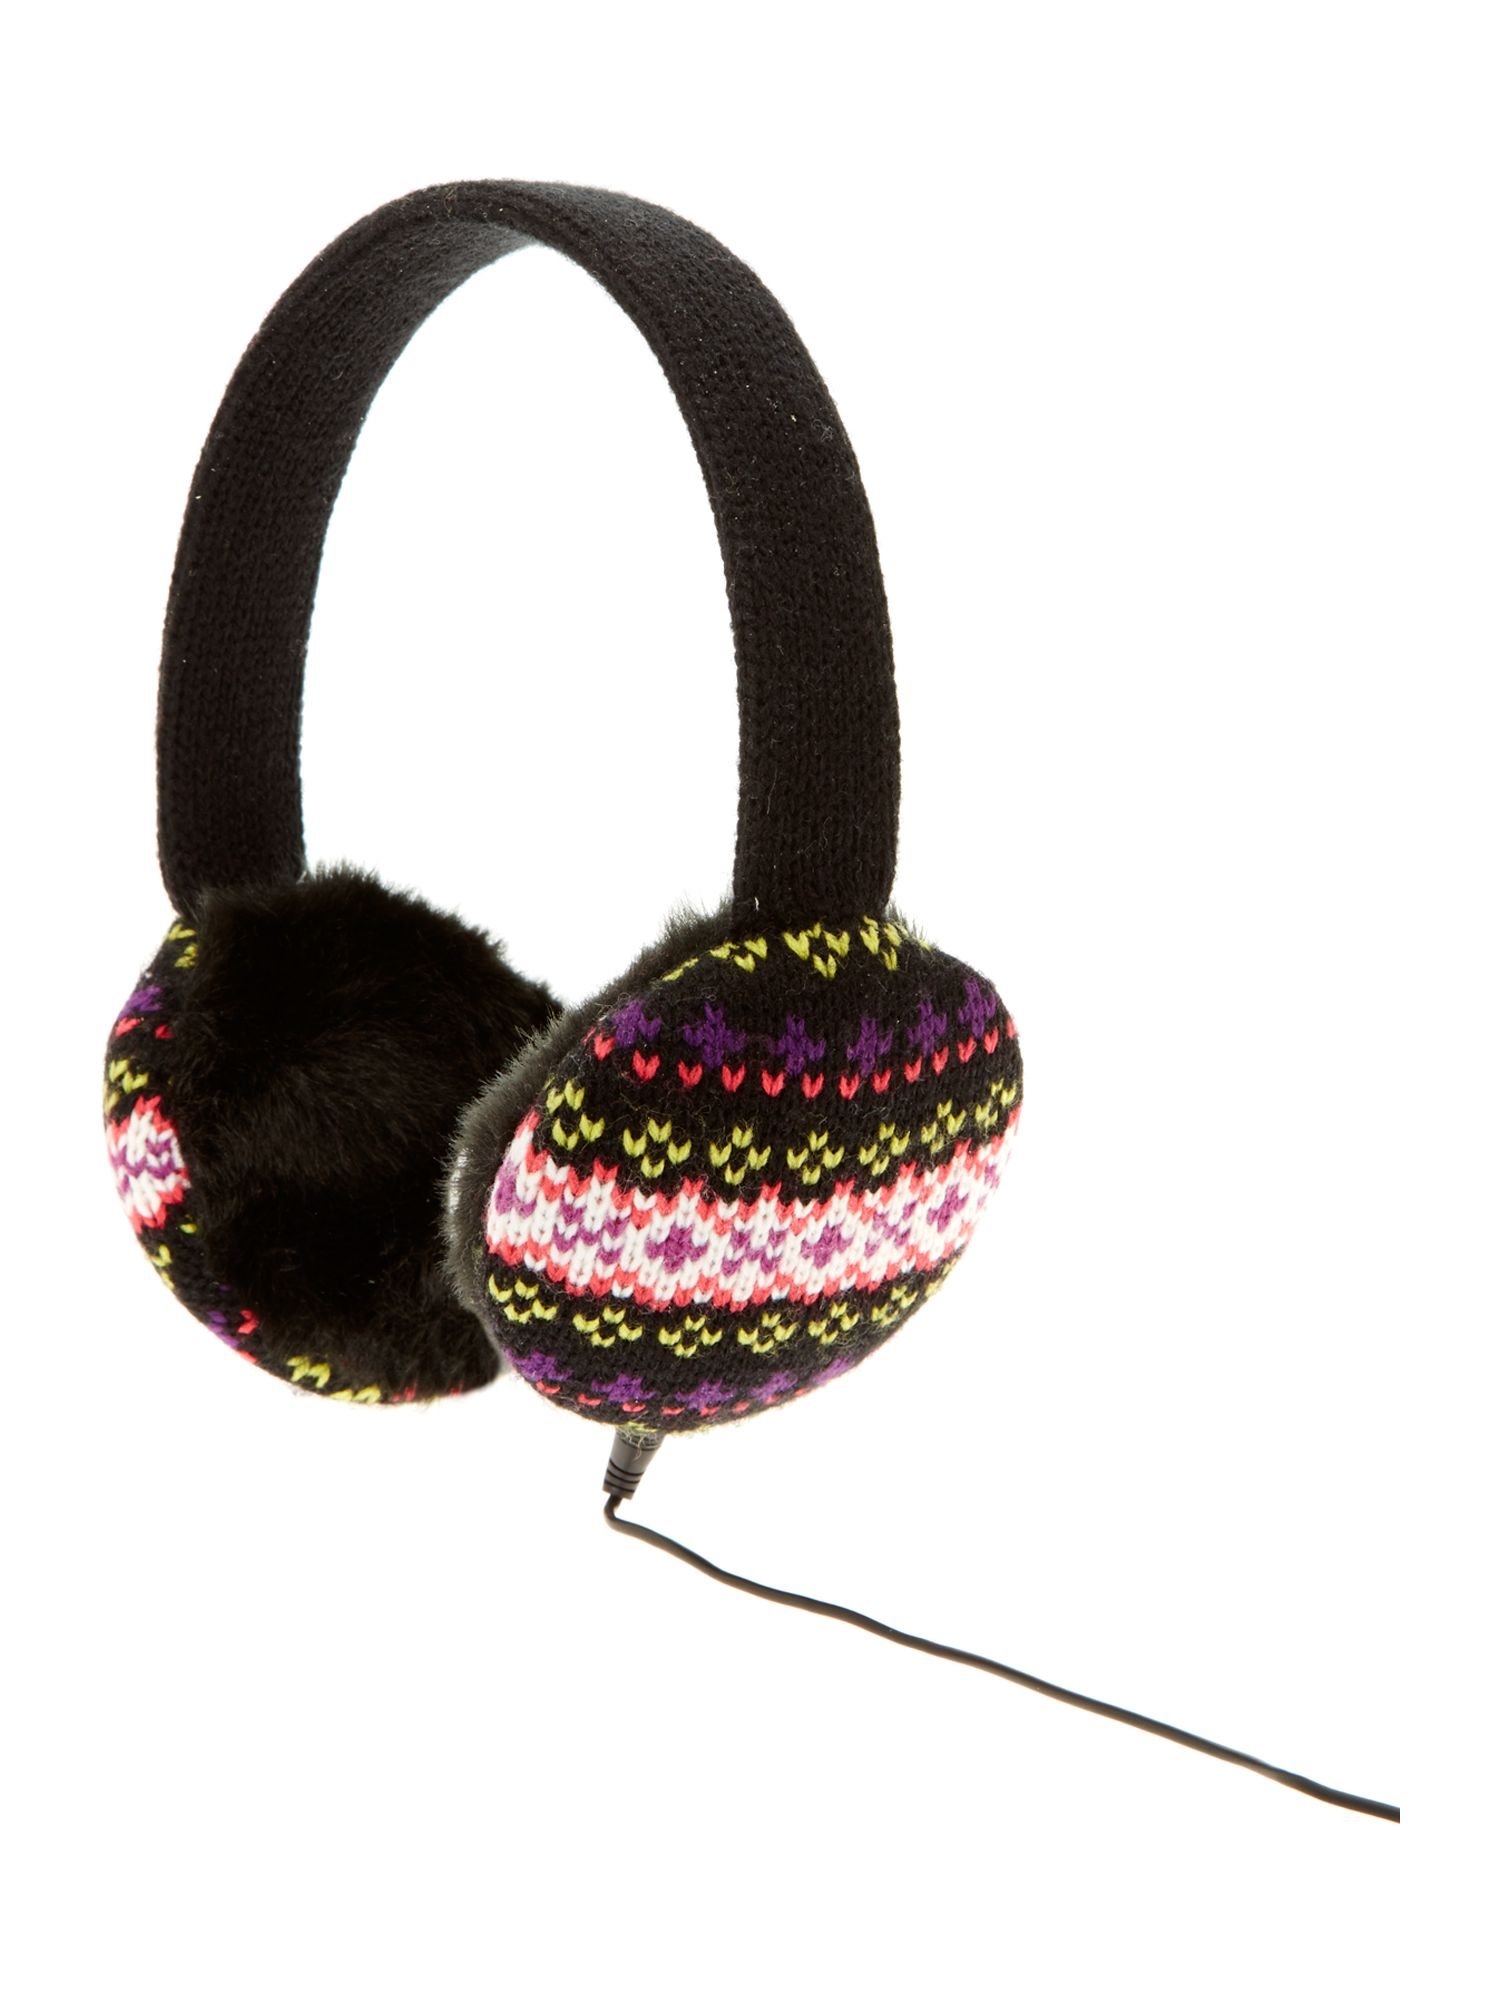 Fairisle knit headphones